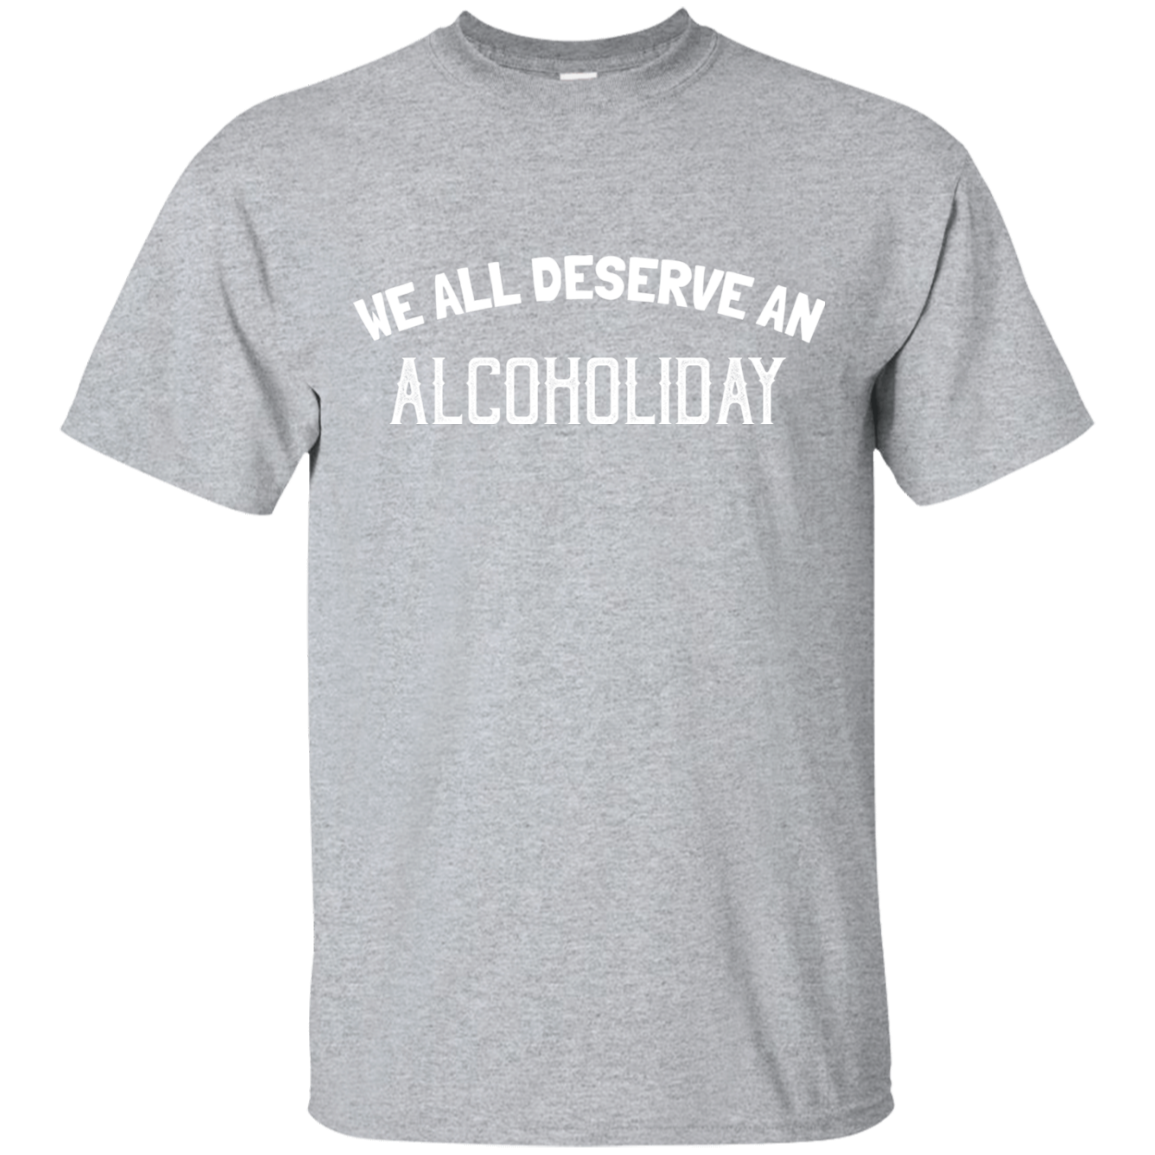 14137cb5 We All Deserve An Alcoholiday T-Shirt in 2019 | Products | Shirts ...